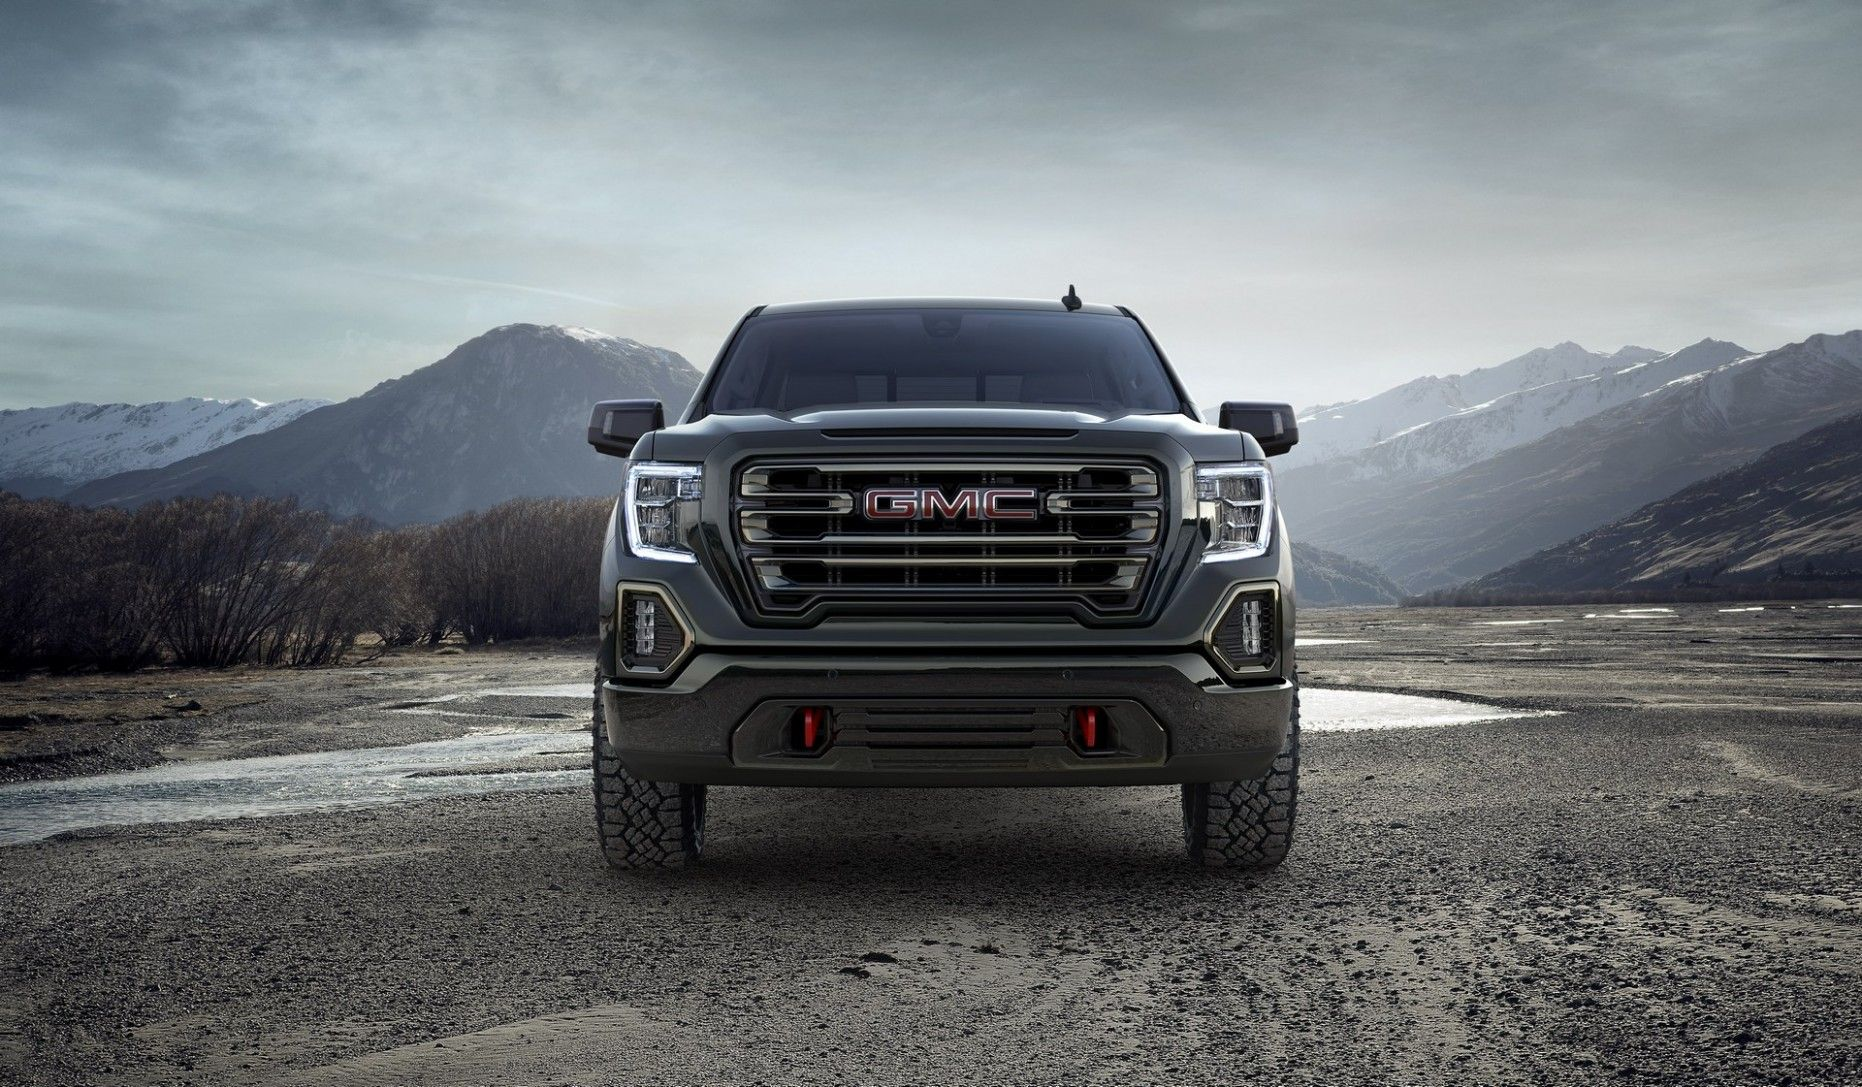 2021 Gmc Sierra Prices Gmc Sierra Gmc Trucks Gmc